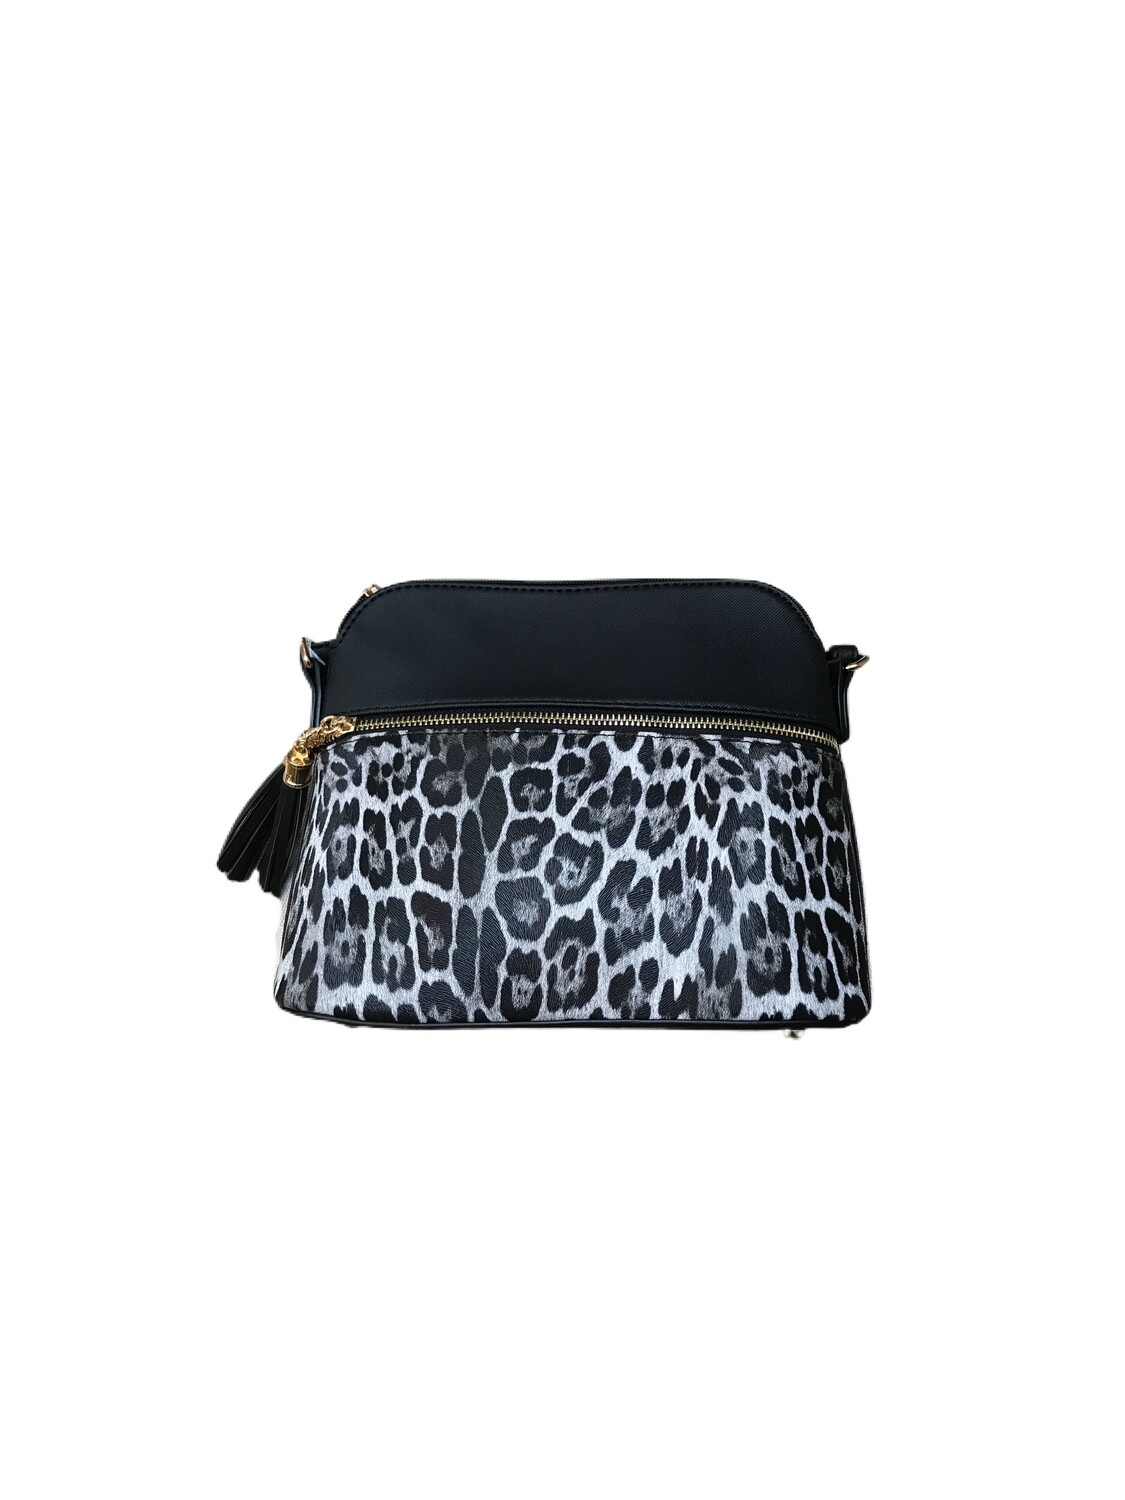 Leopard crossbody black two tone large